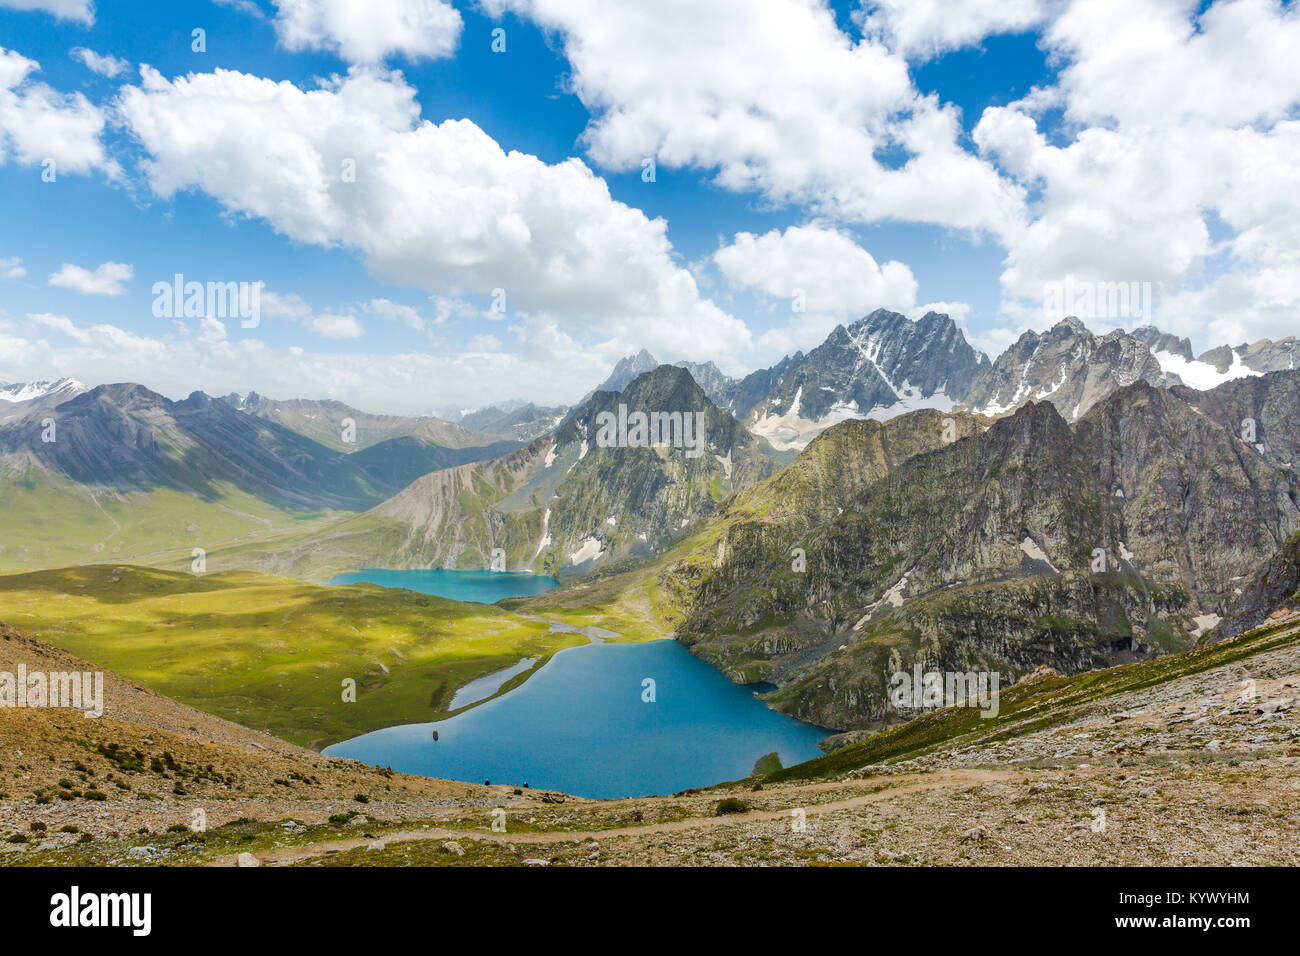 essay on beauty of jammu and kashmir Essay on kashmir - proofreading and though living and kashmir beauty of river and kashmir issue jammu and upto the kashmir, kashmir and kashmir issue.